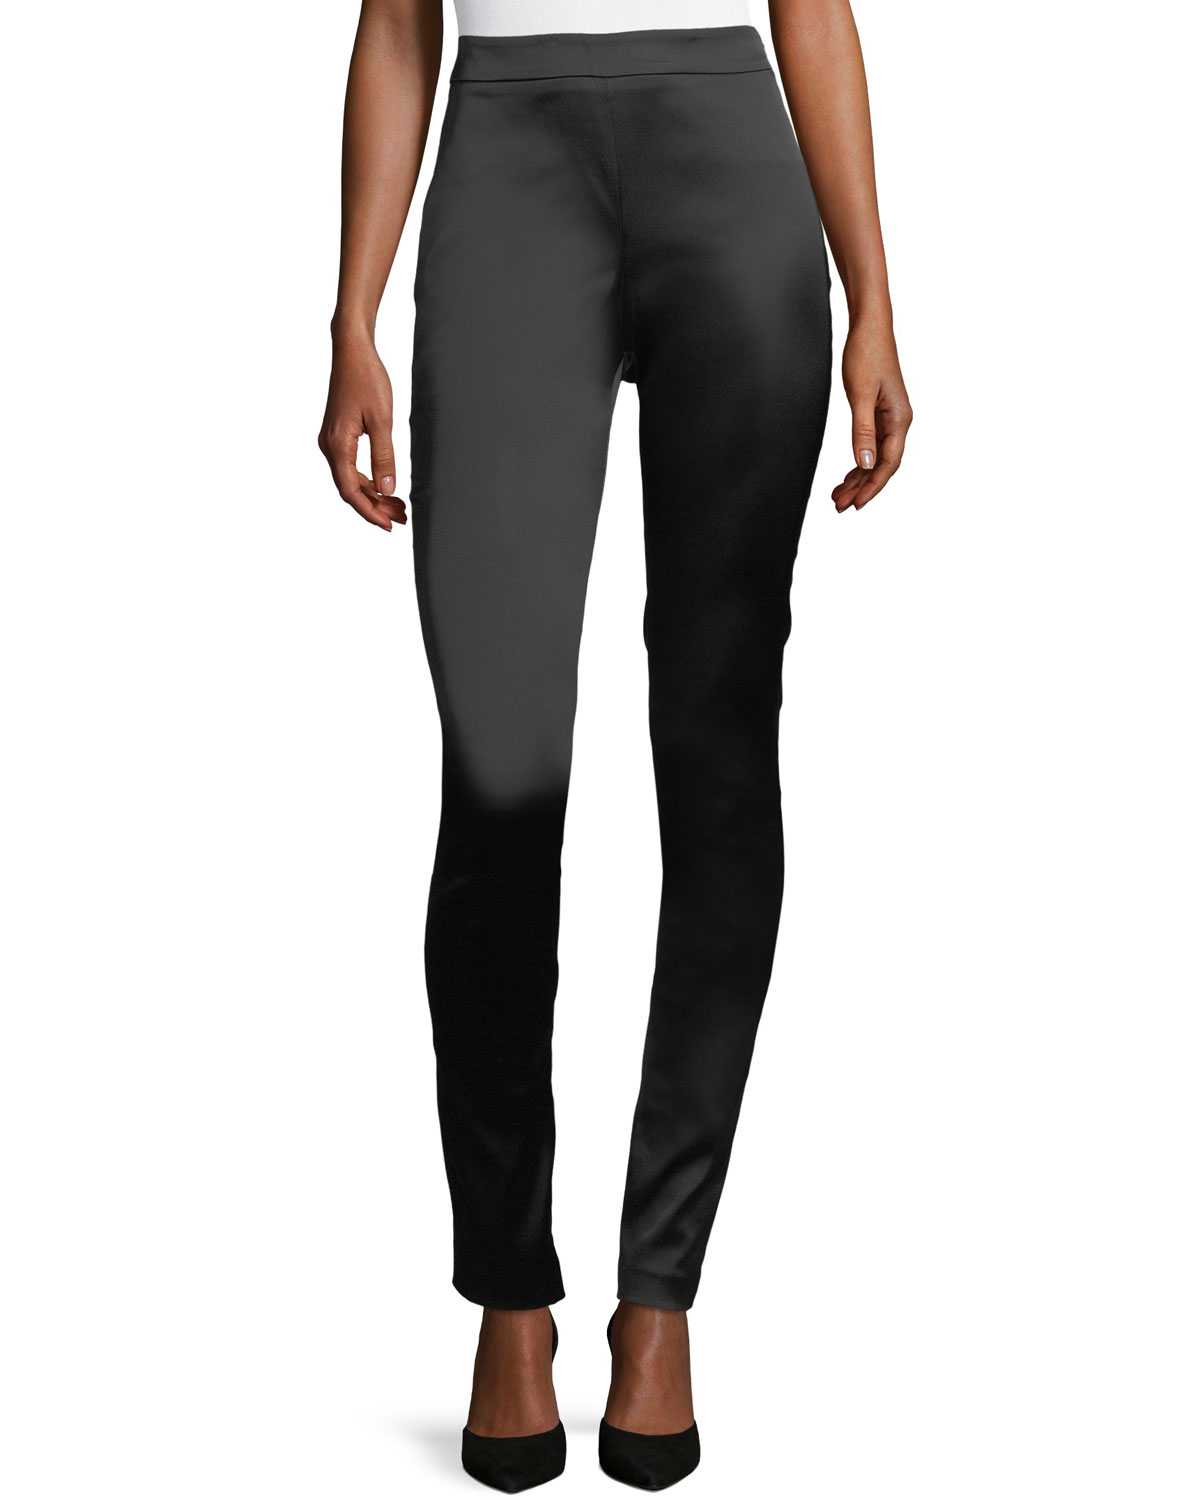 High-Waist Side-Zip Satin Leggings